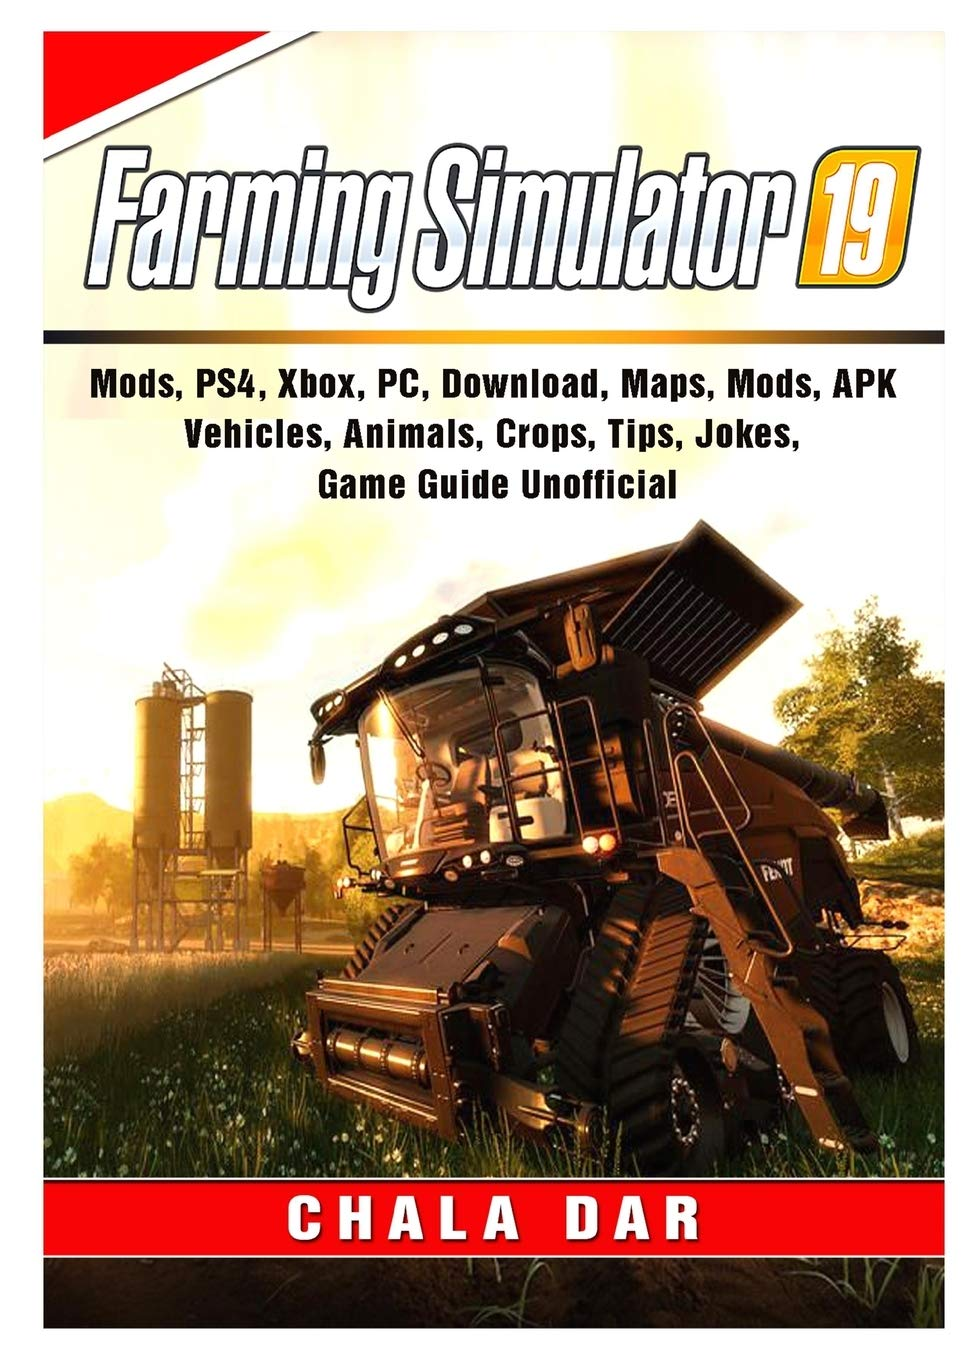 Farming Simulator 19, Mods, PS4, Xbox, PC, Download, Maps ... on download for xbox 360, download for ipad, download for facebook, download for laptop, download web, download for iphone, download for windows, download for psp, download for apple, download ipod, download mac, download usb, download for desktop, download ps2, download playstation,